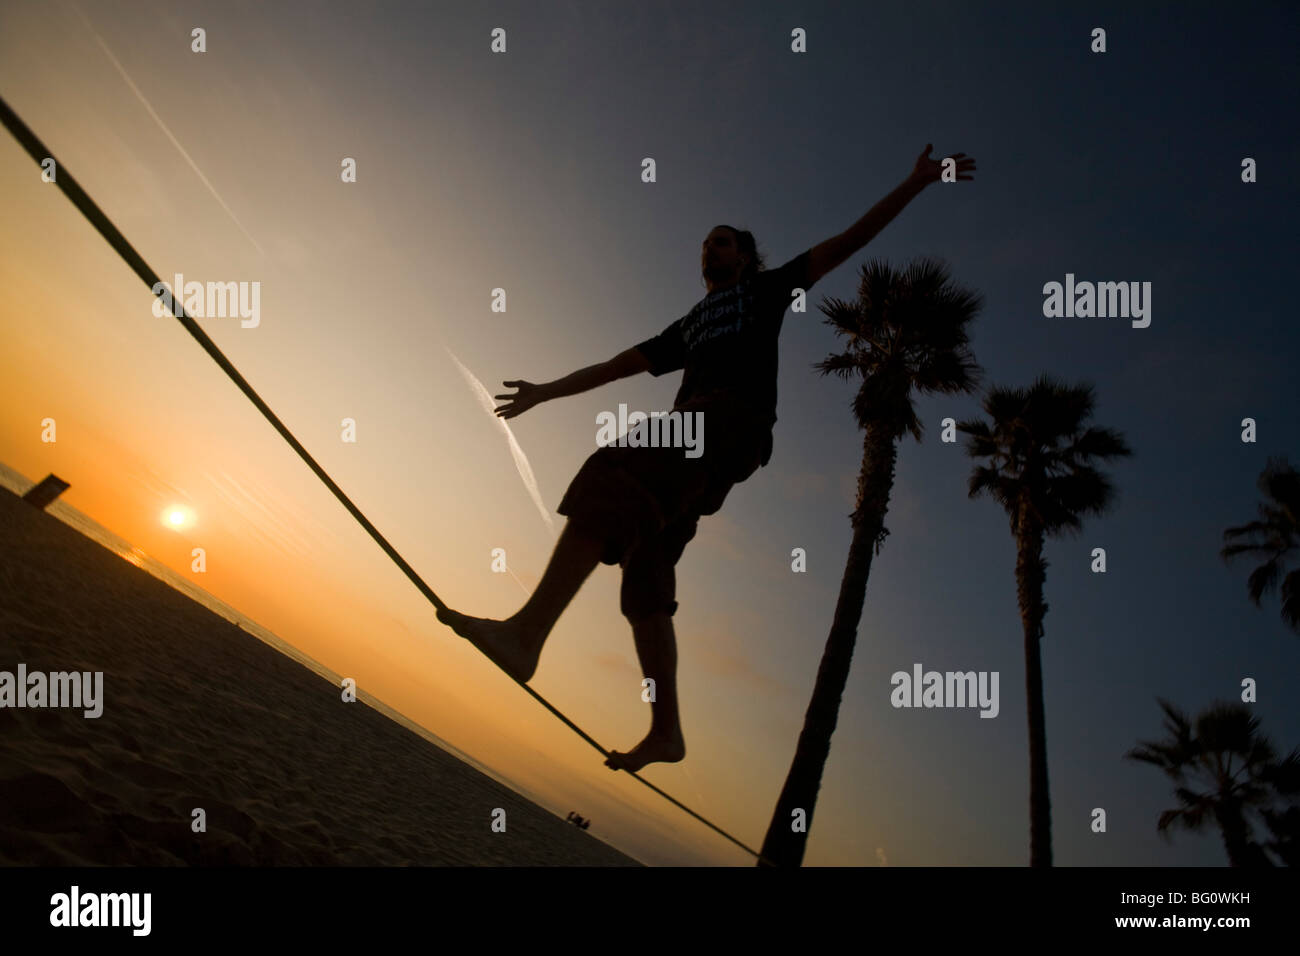 Slacklining - blanacing on a slackline - Venice Beach, Los Angeles County, California, United States of America - Stock Image